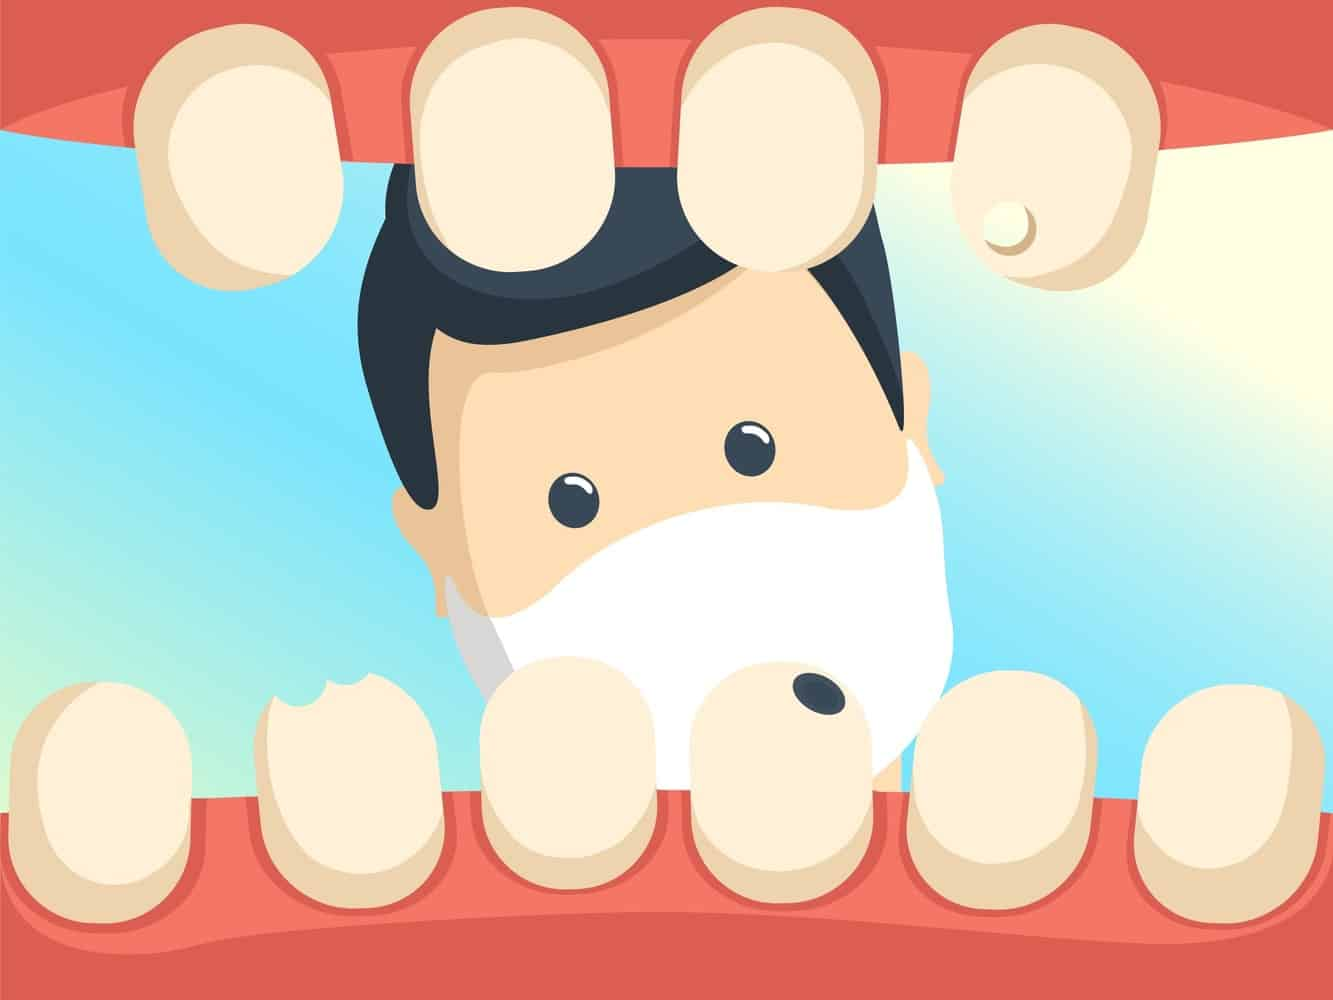 GRaphic of a dentist inspecting oral health.